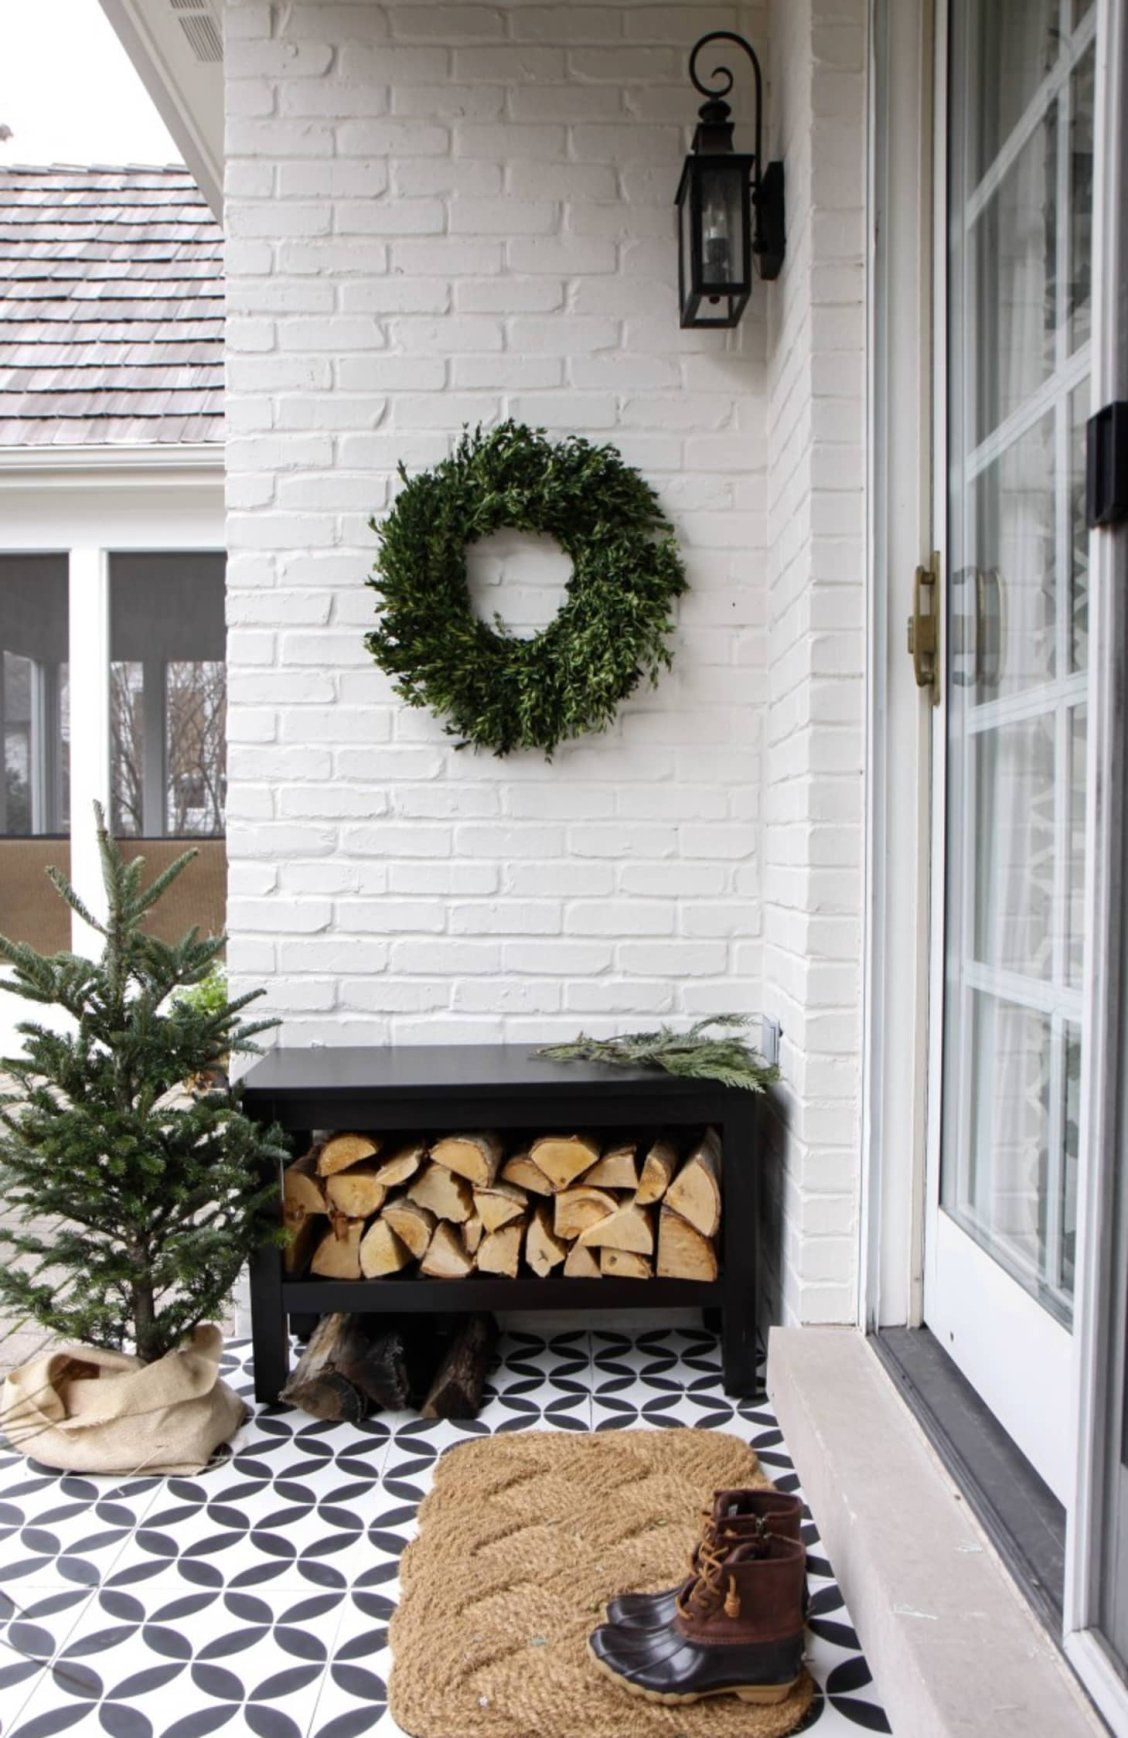 These minimalist Christmas decorating ideas will have your home looking festive and holiday-ready, without a reindeer or snowman in sight.  |  #Holiday #HolidayDecorating #ChristmasDecorating #Wreaths #OutdoorChristmasDecorations